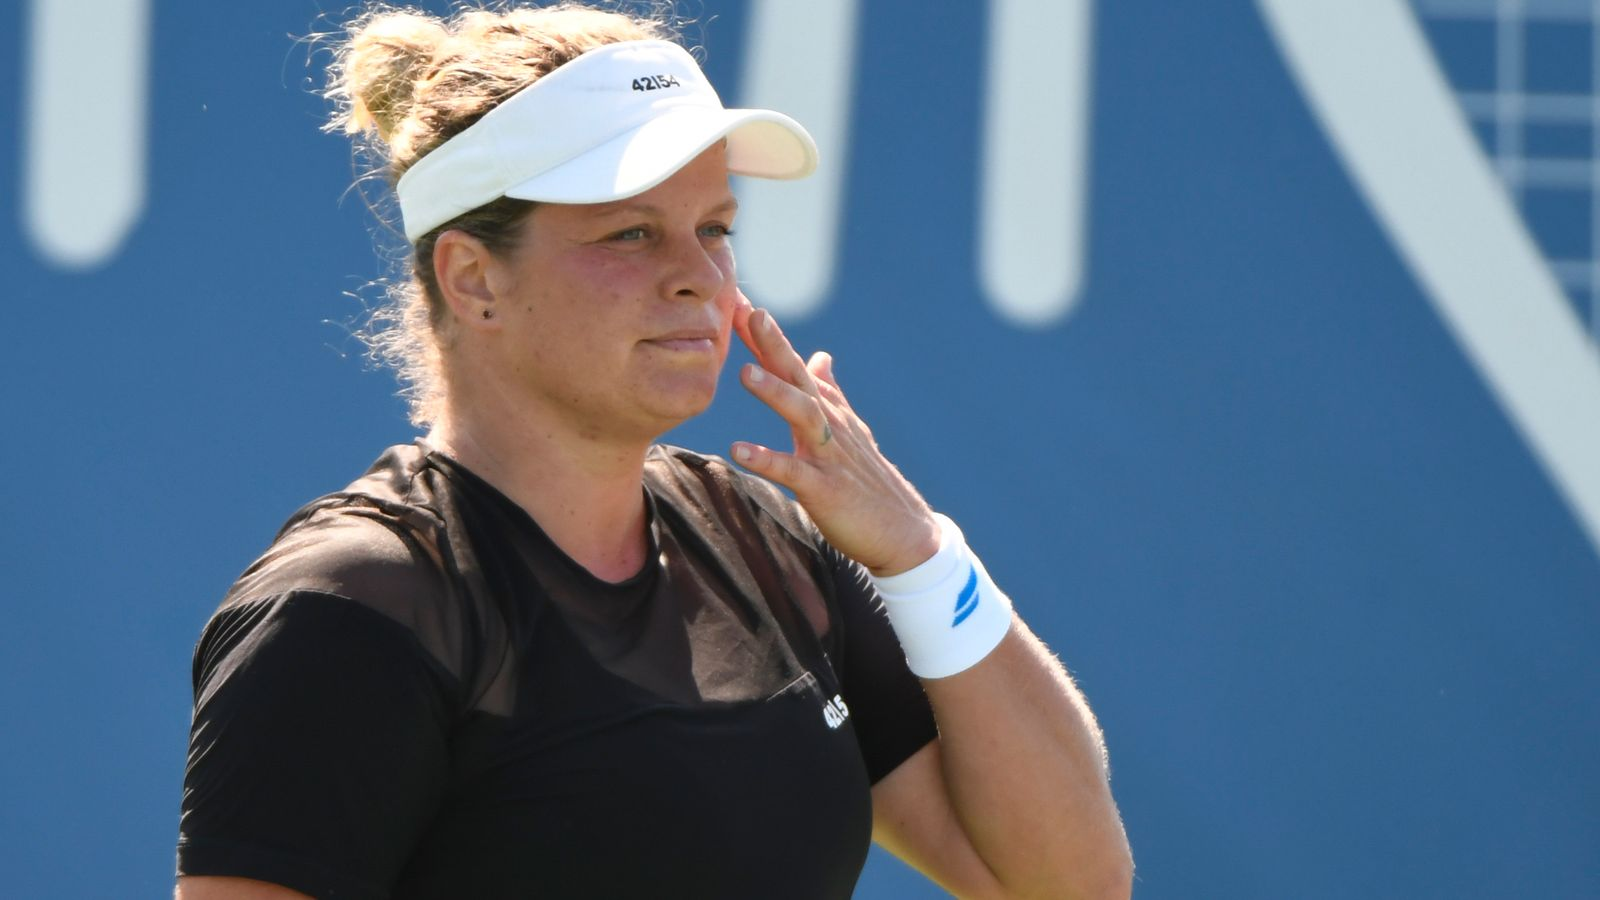 Kim Clijsters suffers first-round exit in latest comeback match at the Chicago Fall Classic